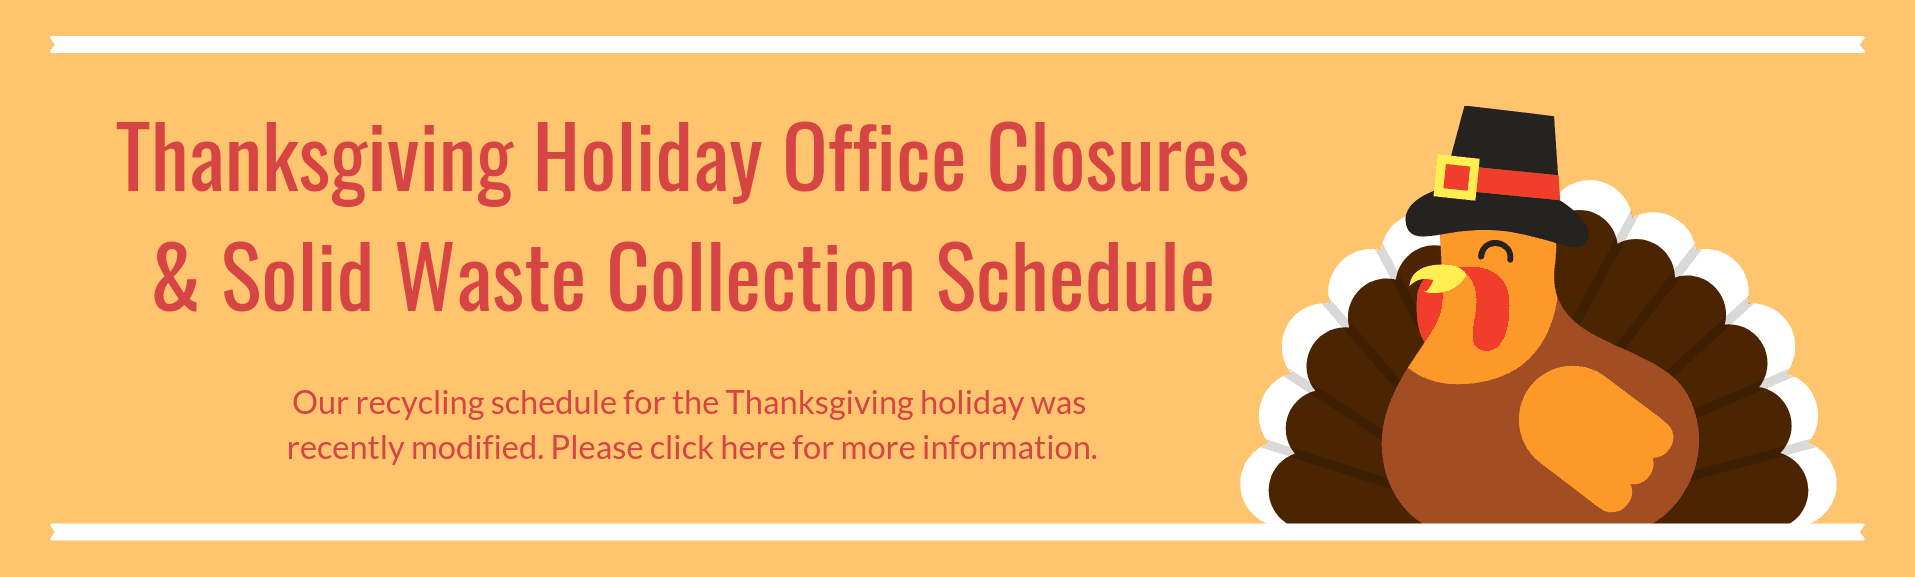 Thanksgiving holiday office closures and solid waste collection schedule. Click here for more information.